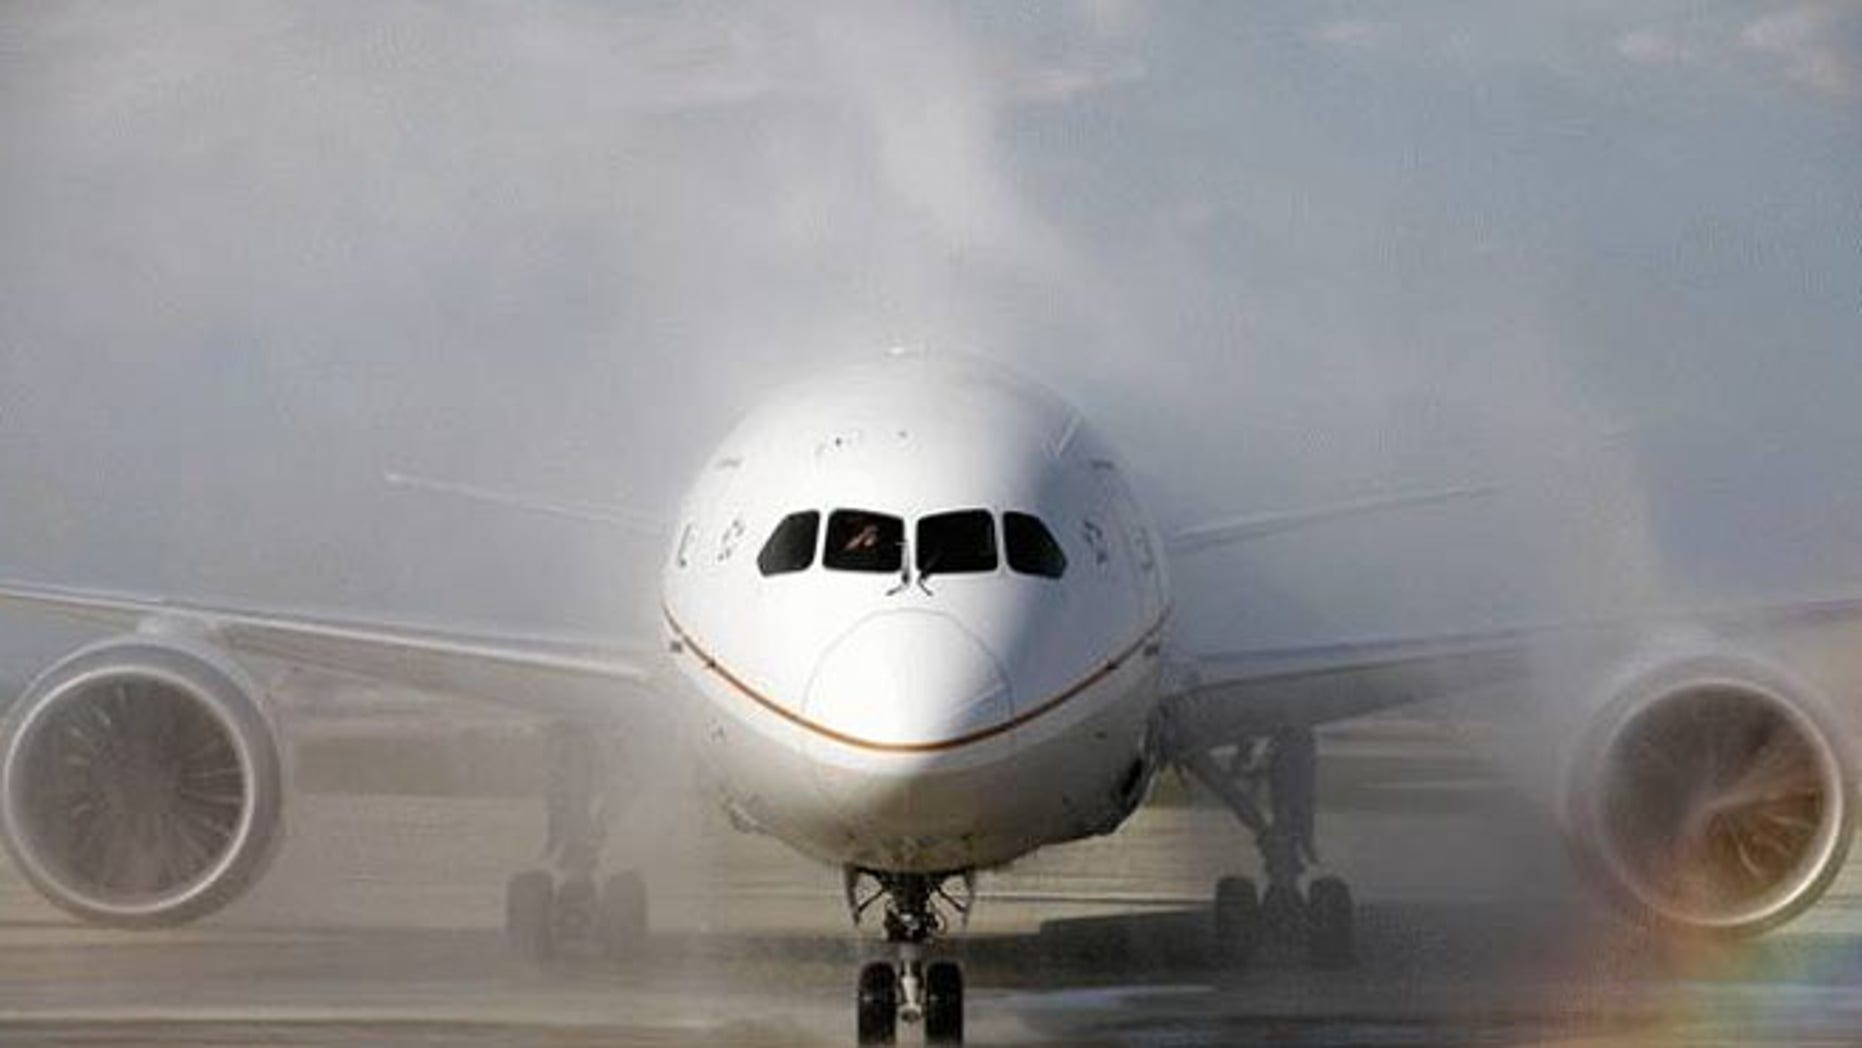 United Airlines said Monday it plans to fly the Boeing 787 Dreamliner for the first time after its grounding on May 31.